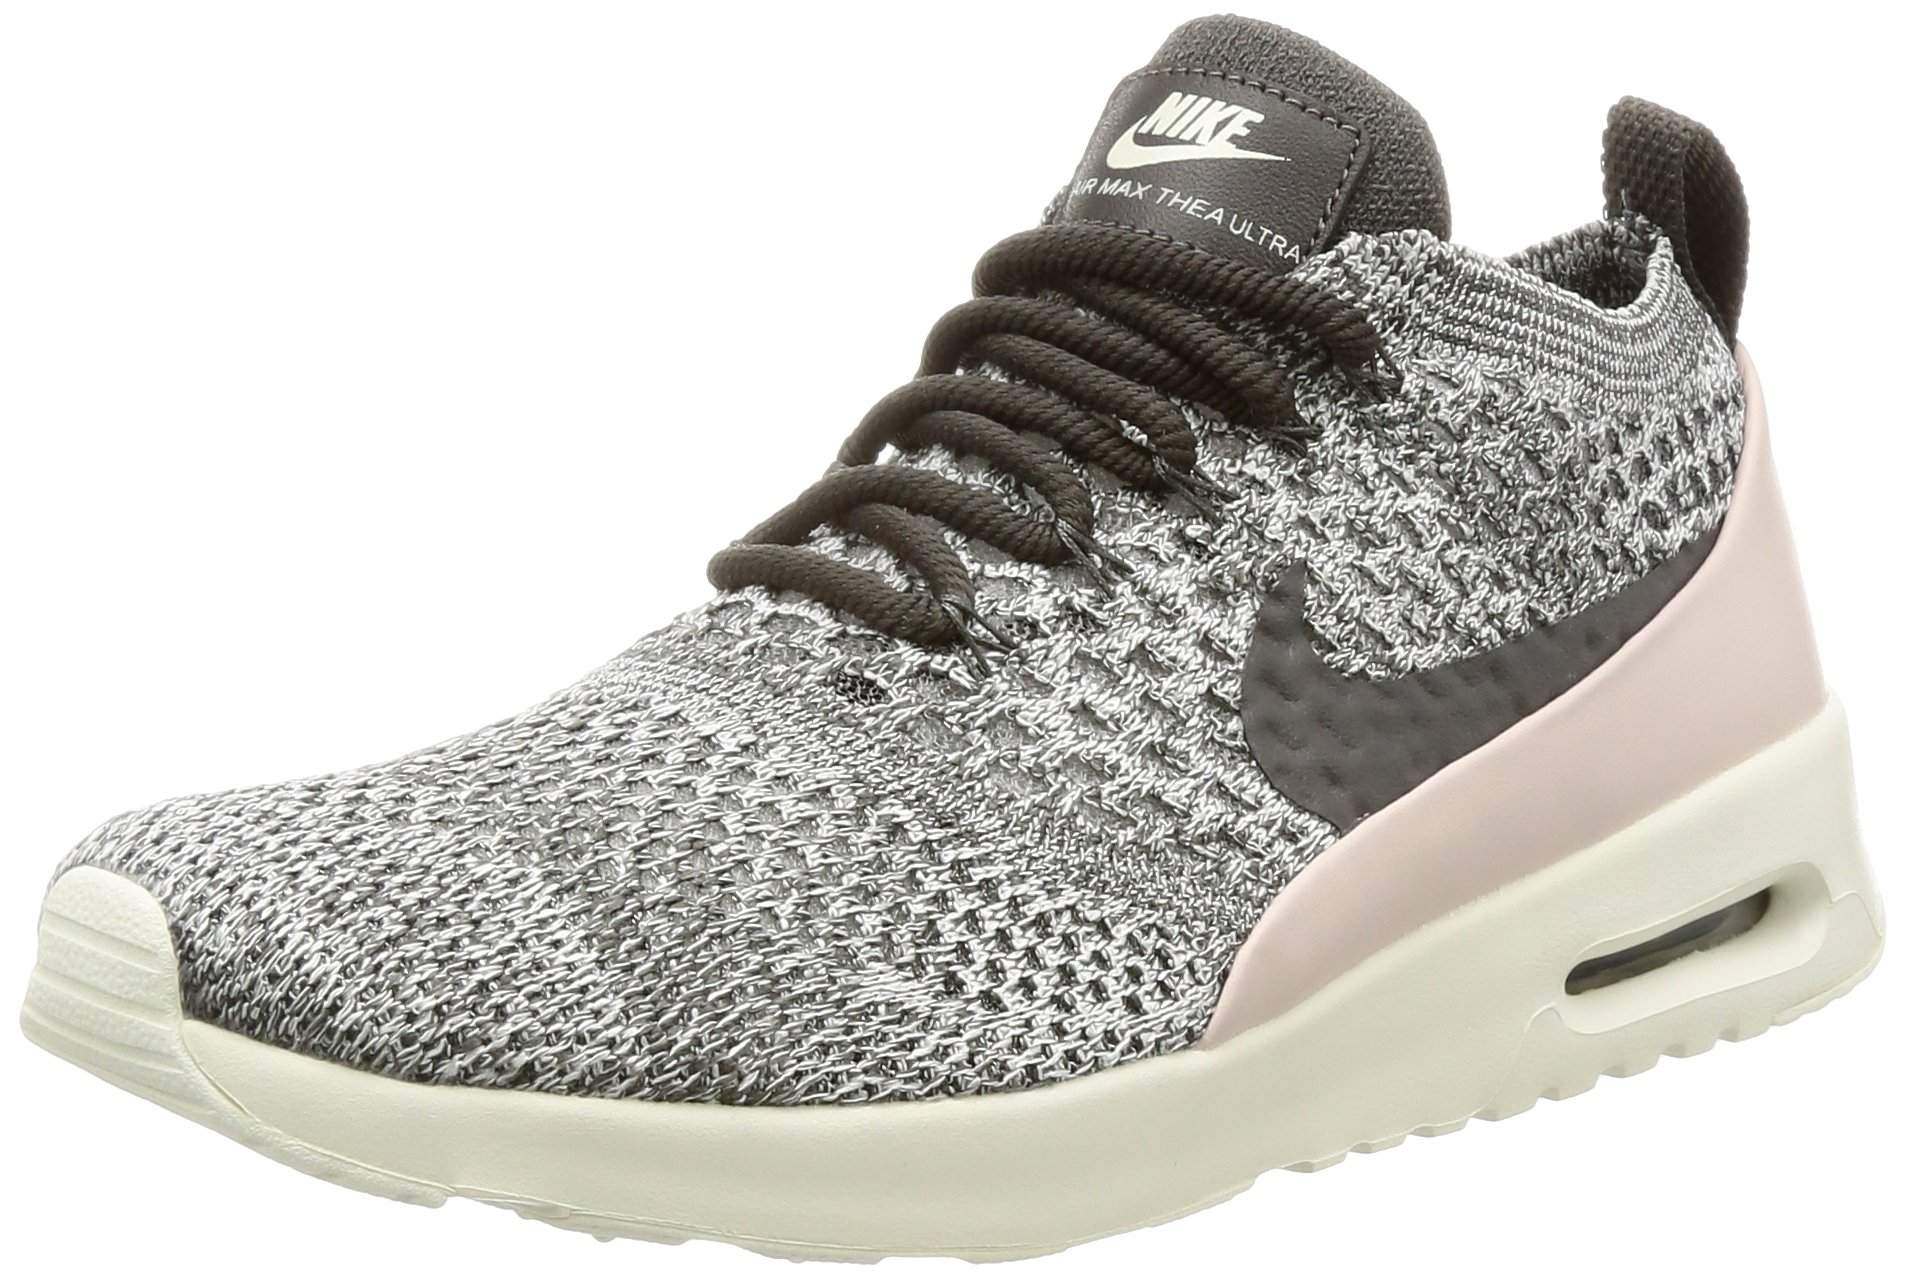 NIKE Air Max Thea Ultra Fk Womens Running Trainers 881175